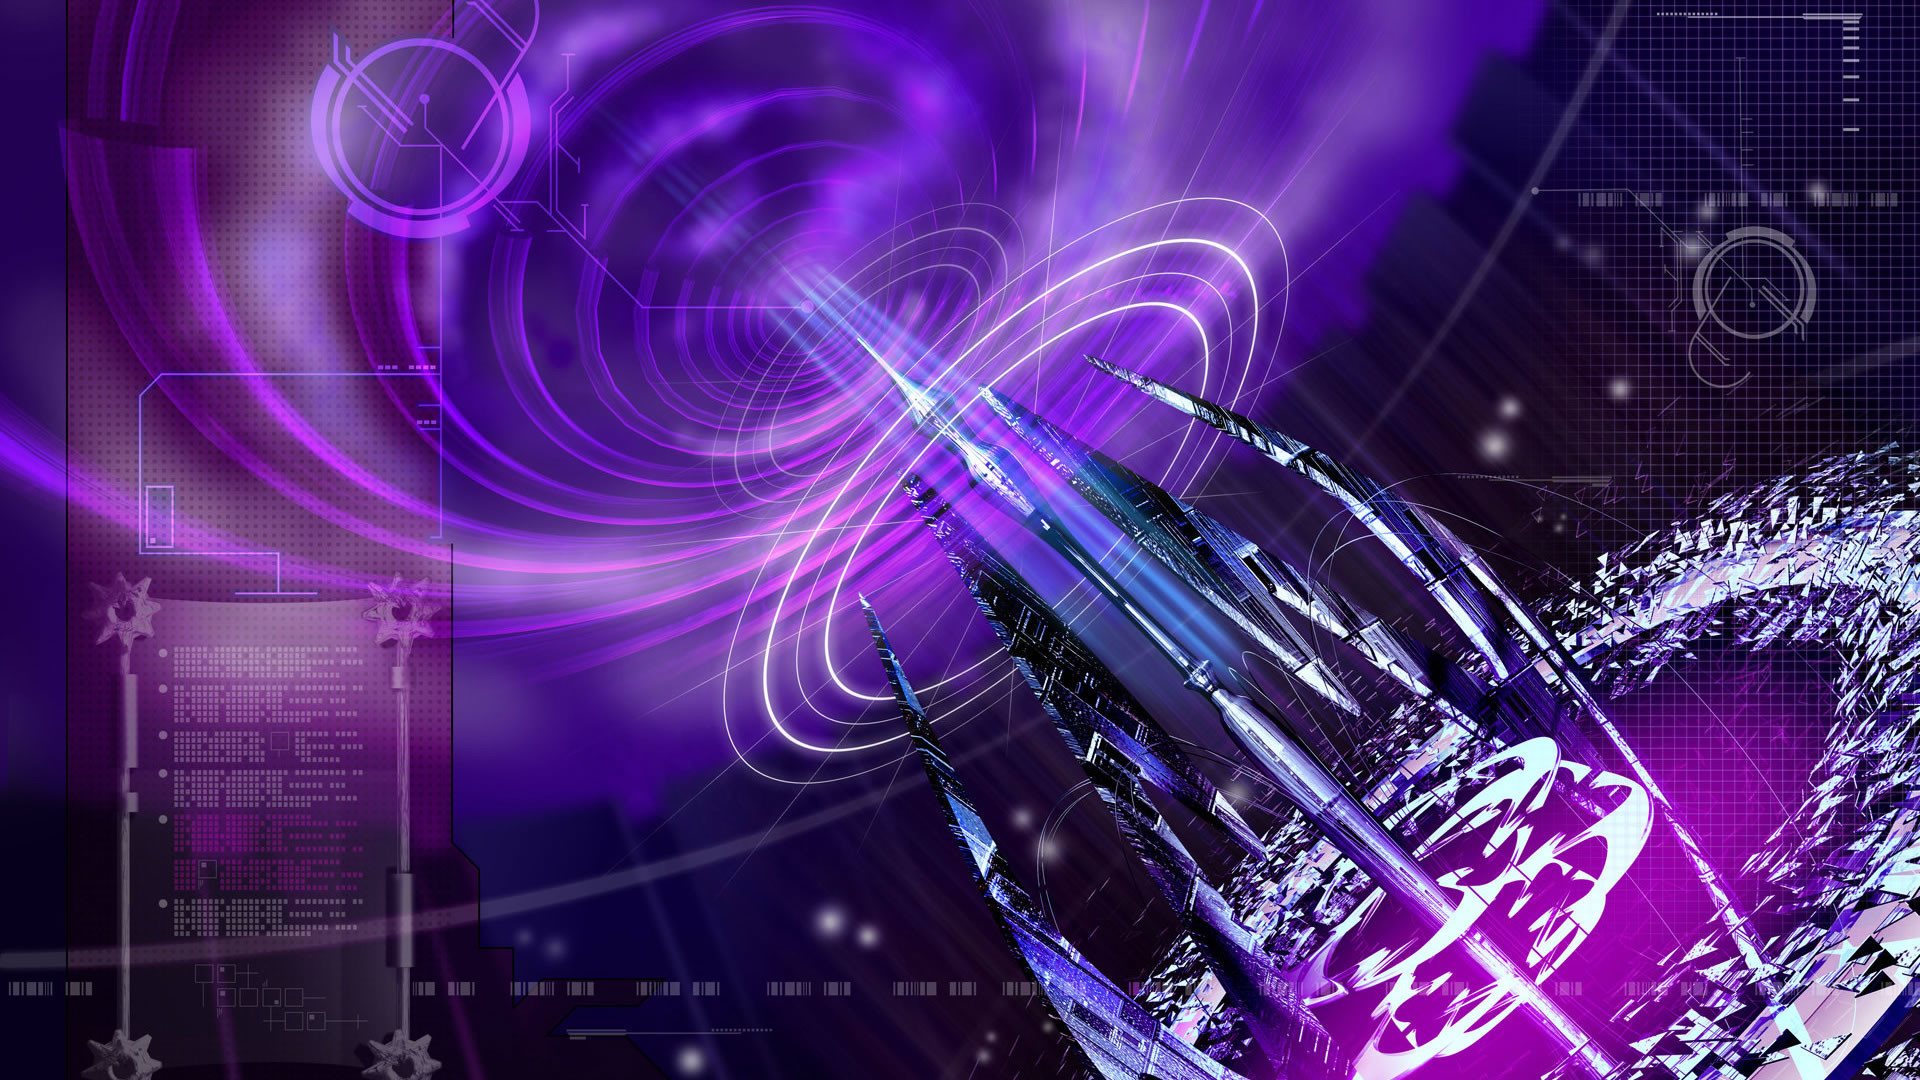 1920x1080 hd wallpaper abstract purple